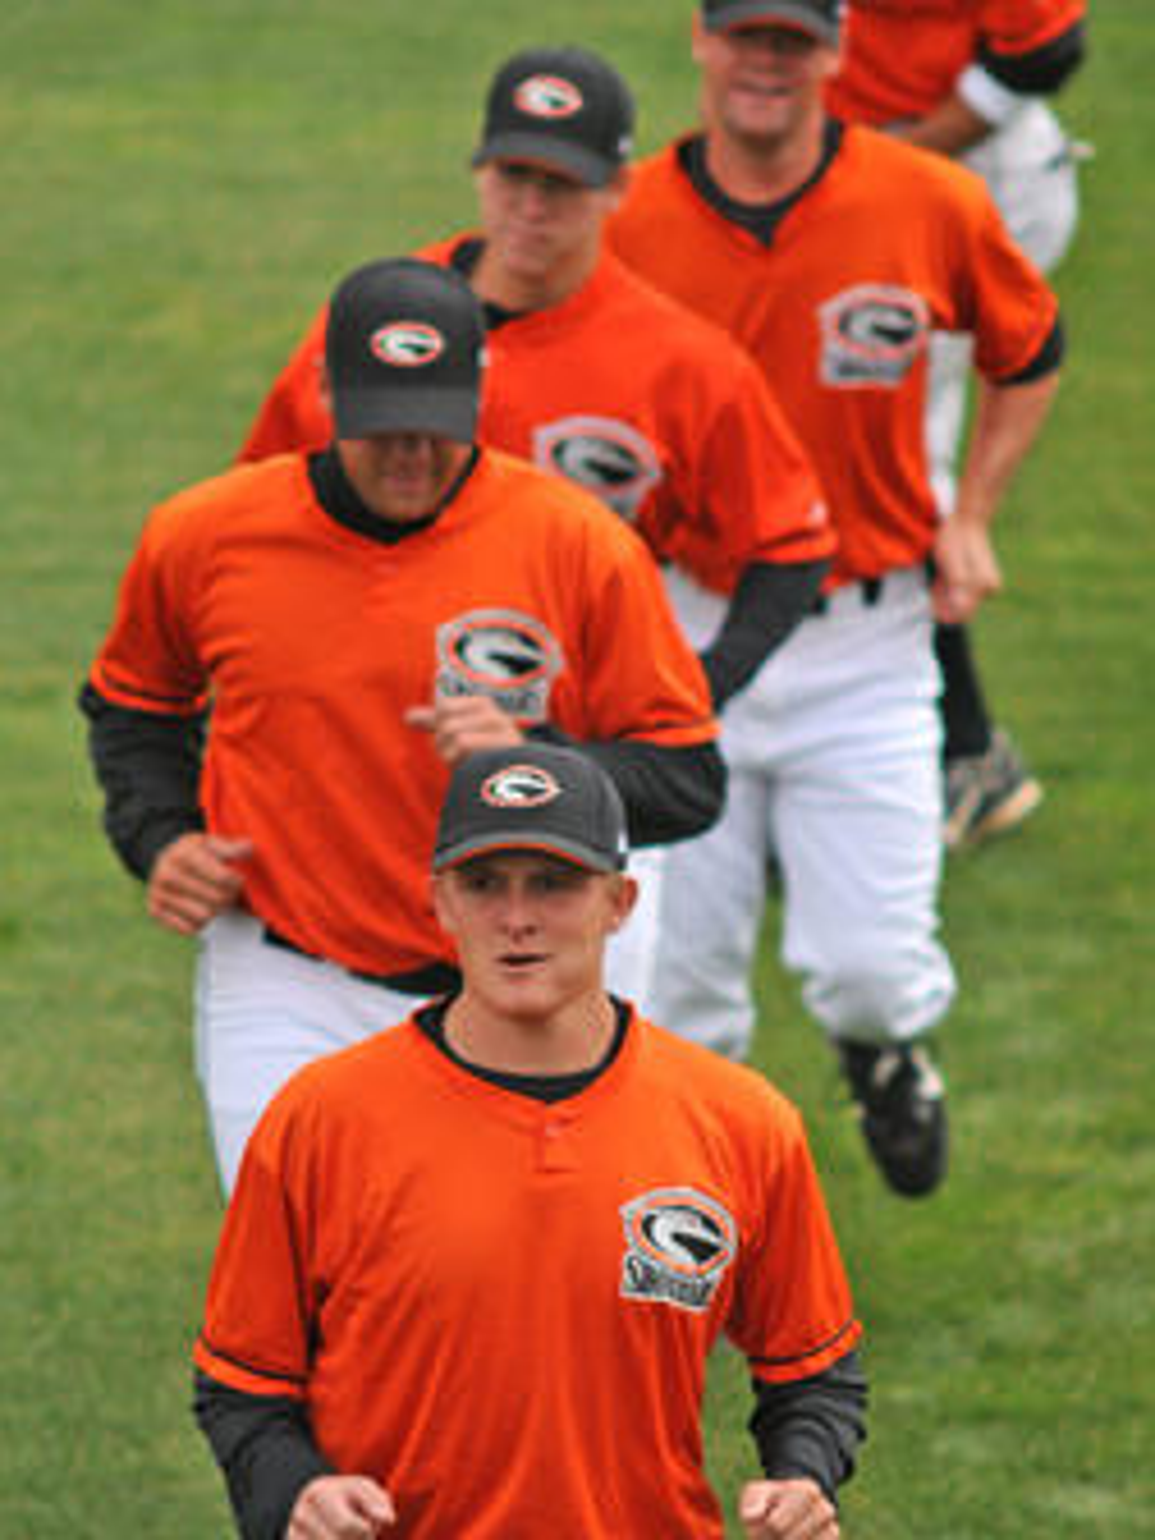 Shorebirds player warm up before a 2008 game.